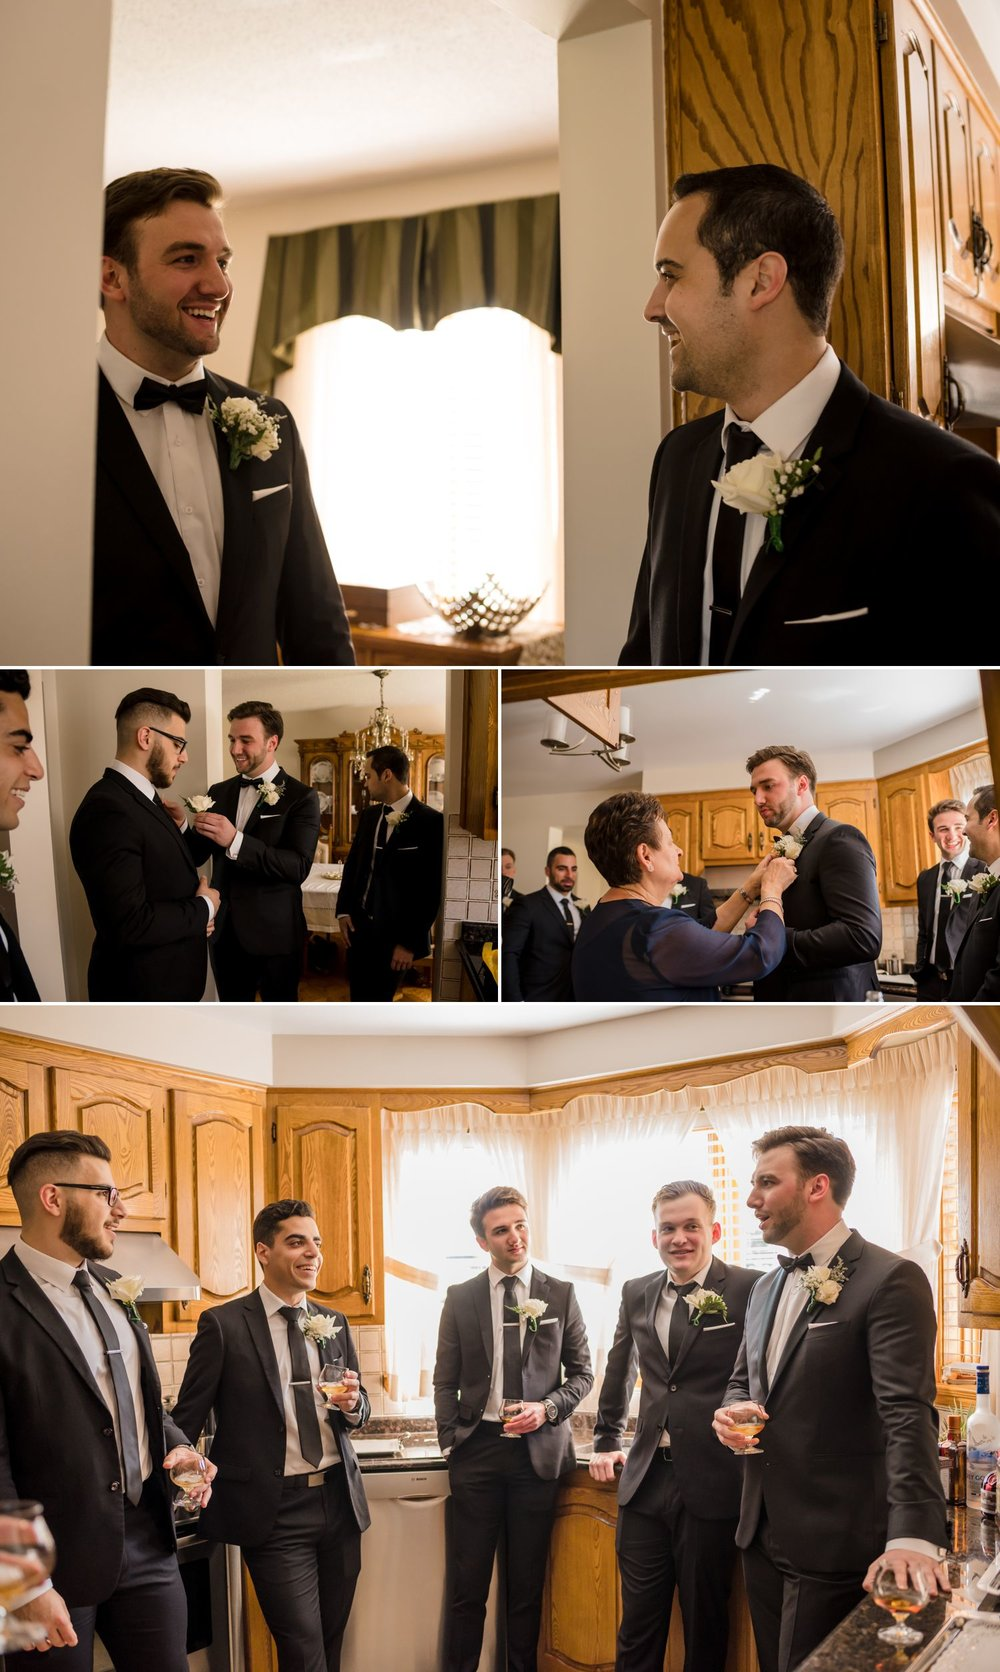 The groom with his groomsmen and family getting ready at his family home in Ottawa